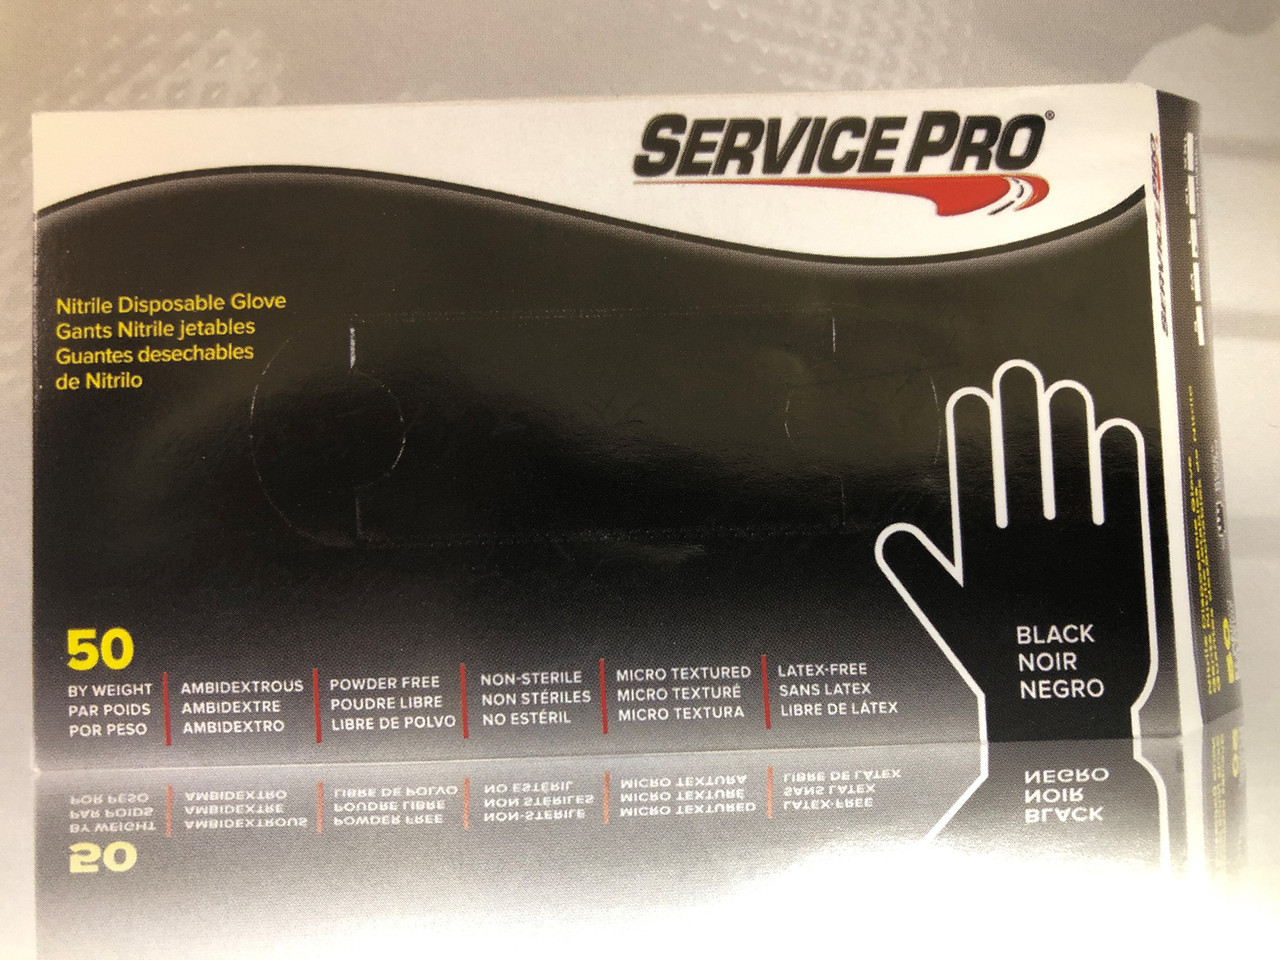 Service Pro Nitrile Disposable Gloves 100 Count -X-Large